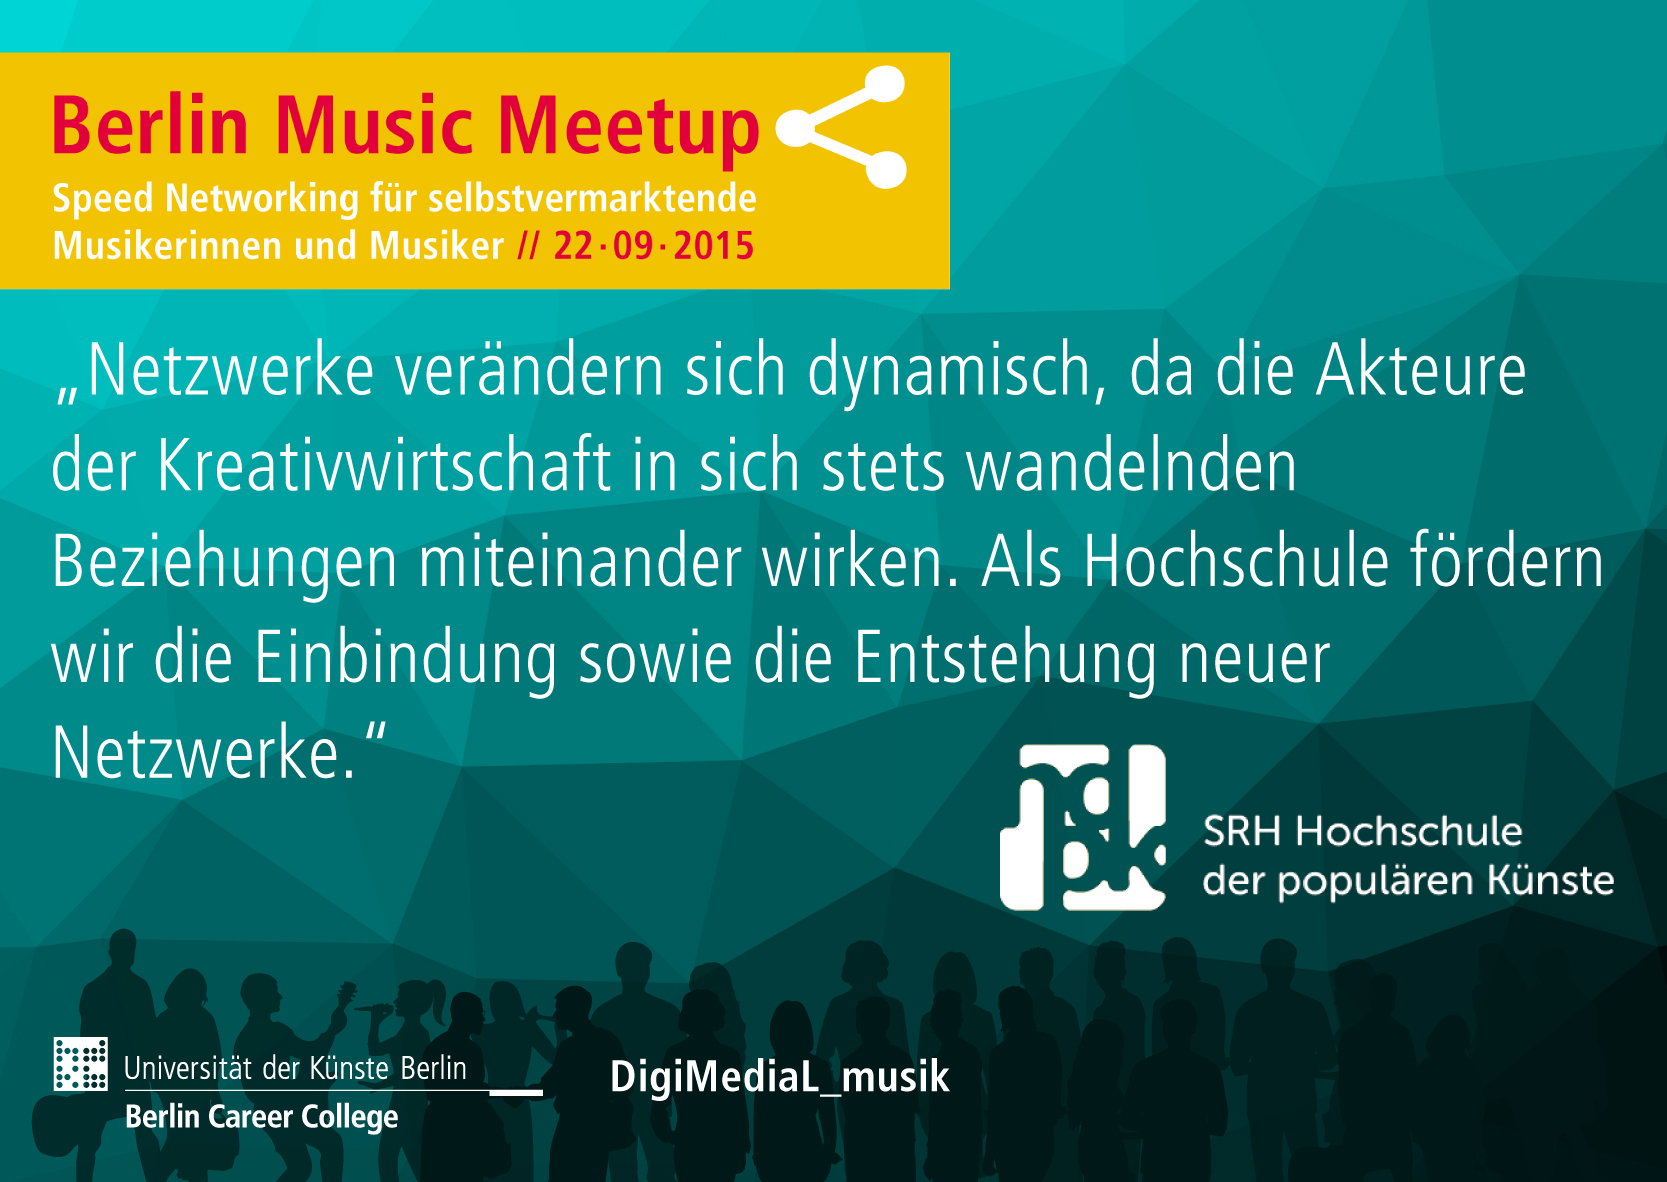 berlin_music_meetup_web_flyer_hdpk